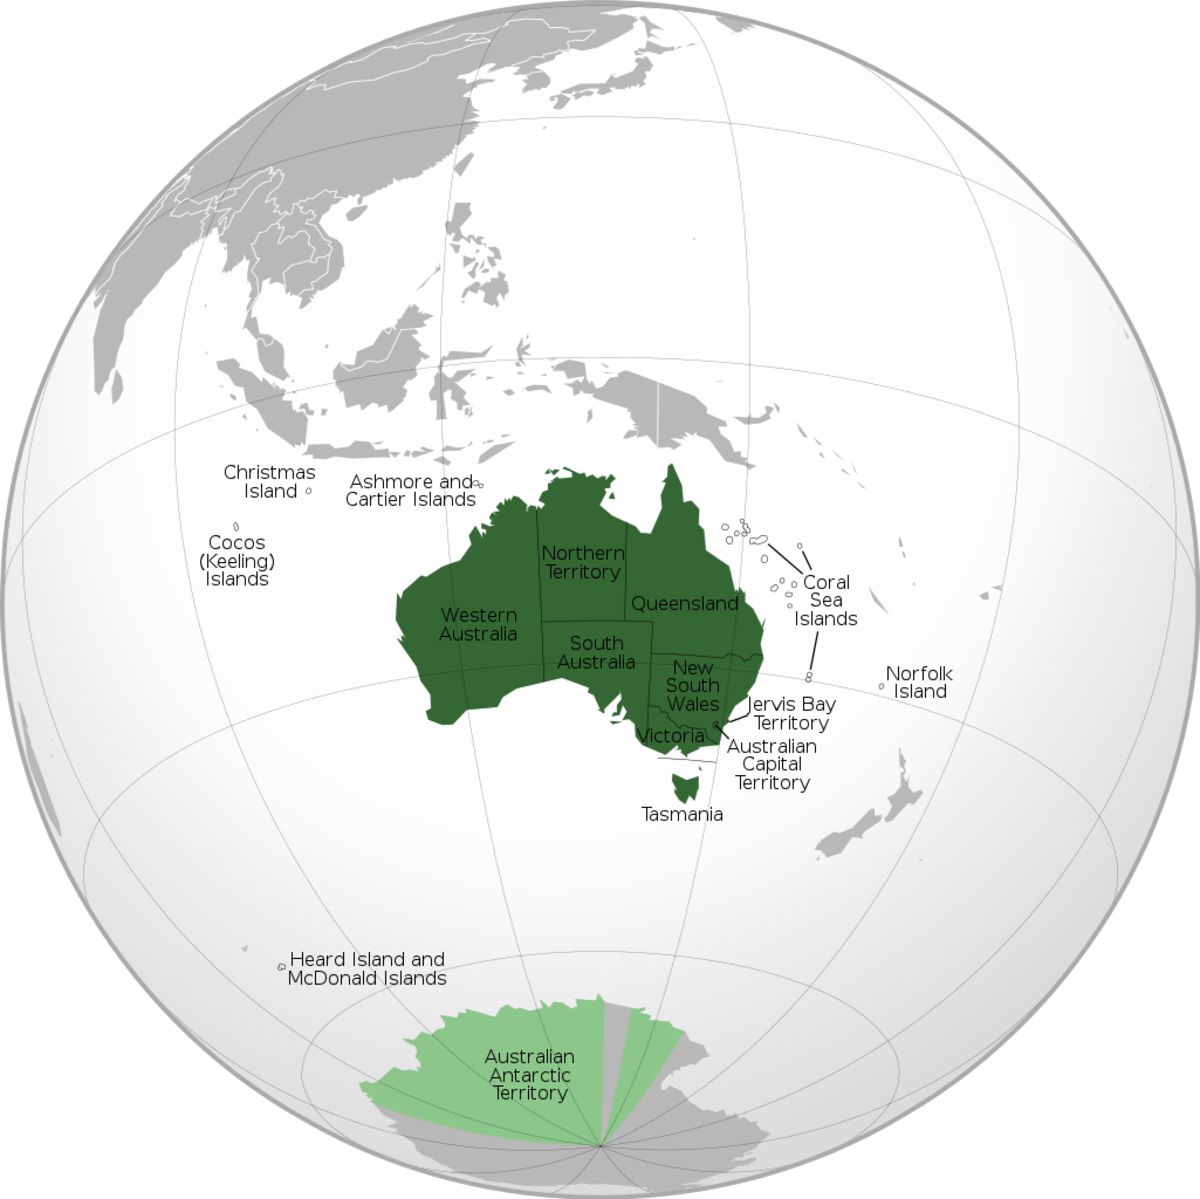 States and territories of Australia; the crucifix frog is found in Queensland and New South Wales in eastern Australia